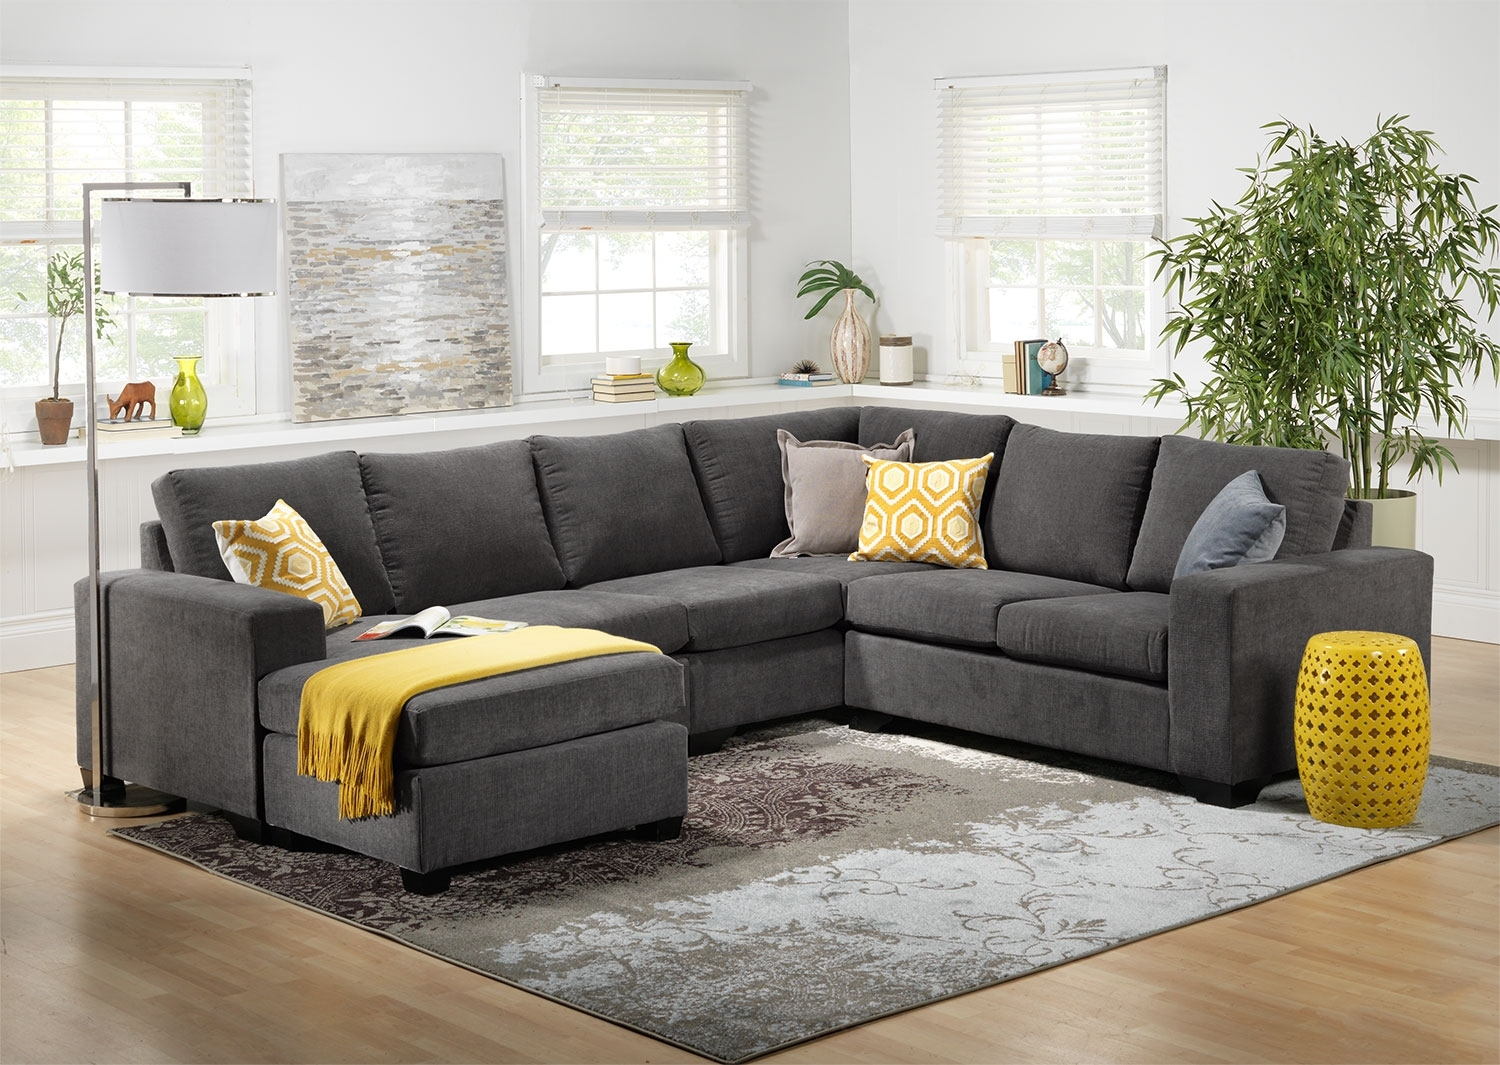 Impressive 3 Piece Sectional 17 20039989 Config Gallery 01 Large regarding Delano Smoke 3 Piece Sectionals (Image 15 of 30)